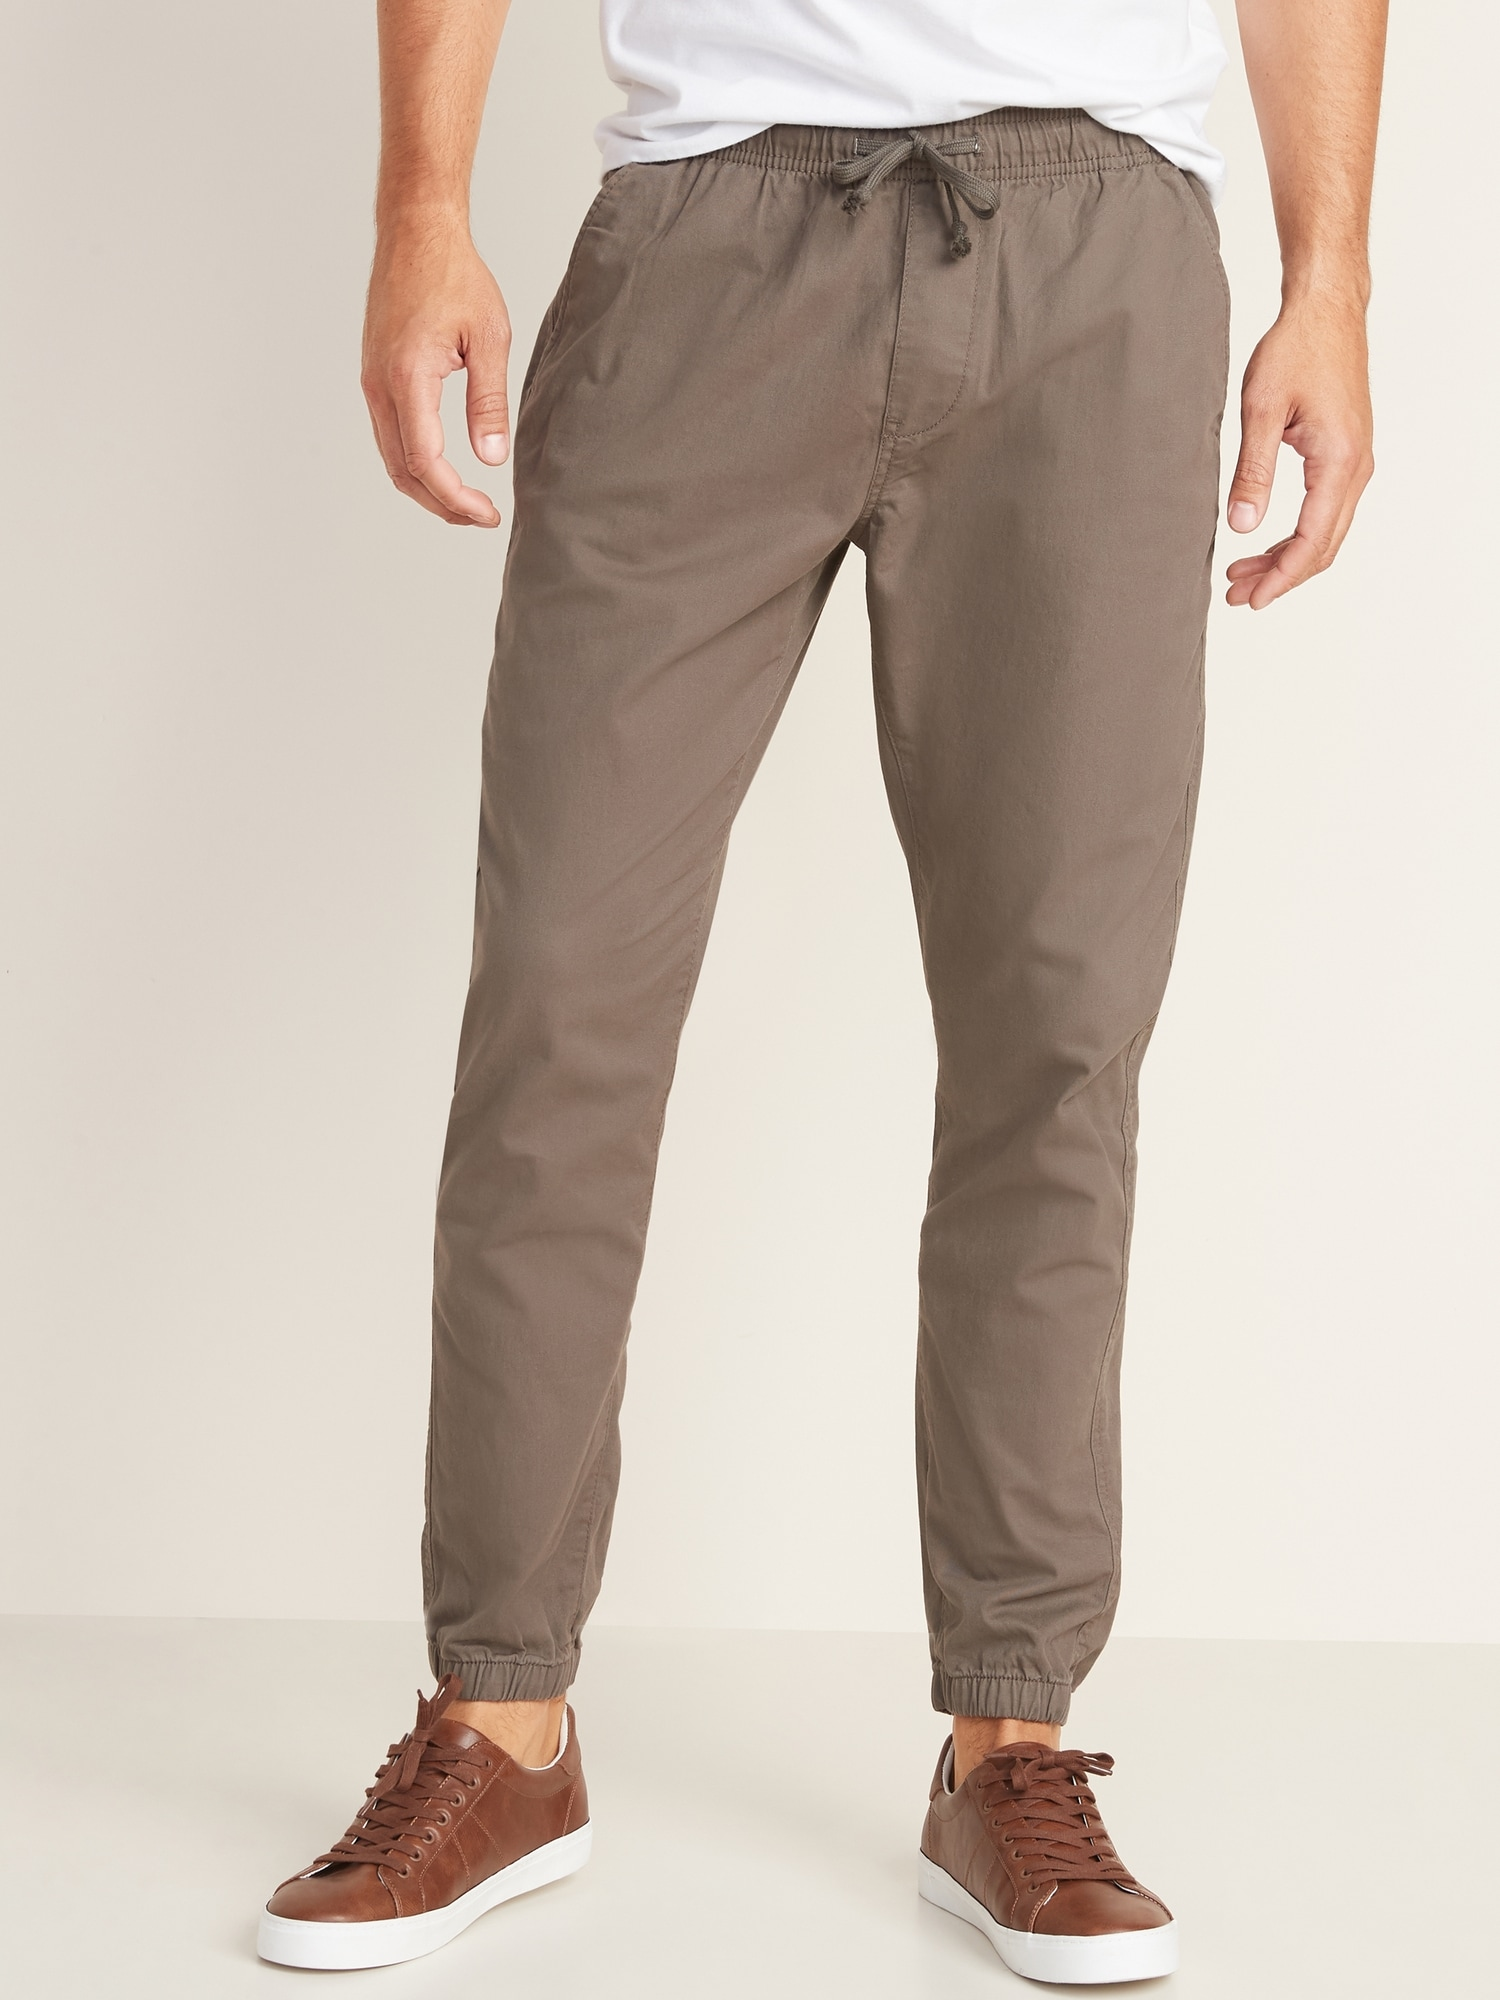 rational construction enjoy bottom price best quality for Built-In Flex Twill Joggers for Men